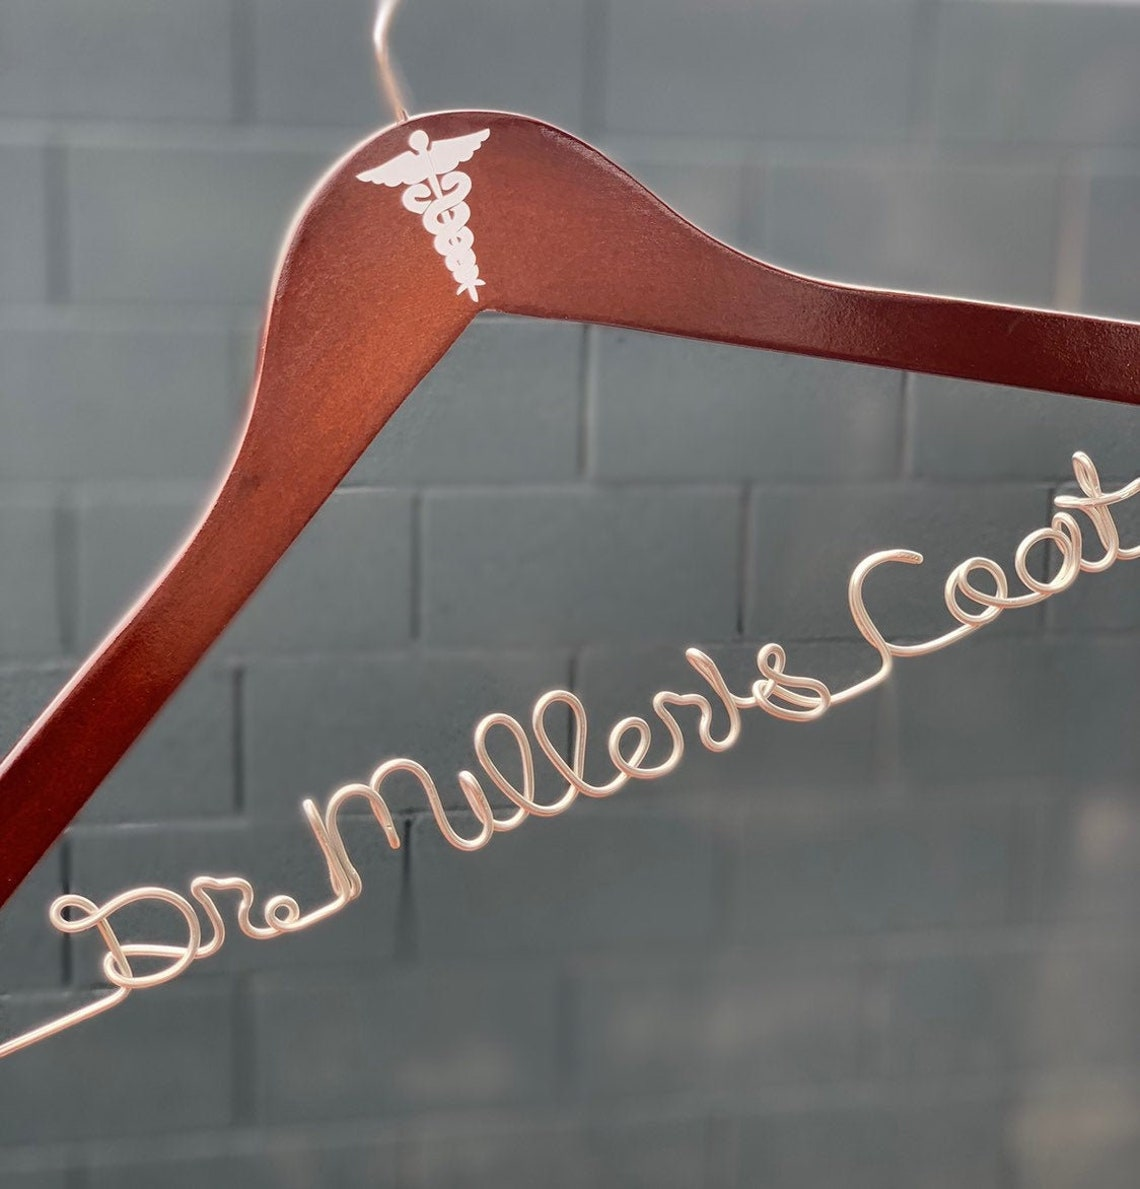 image of coat hanger with the horizontal part being wire bent into the shape of a doctor's name.